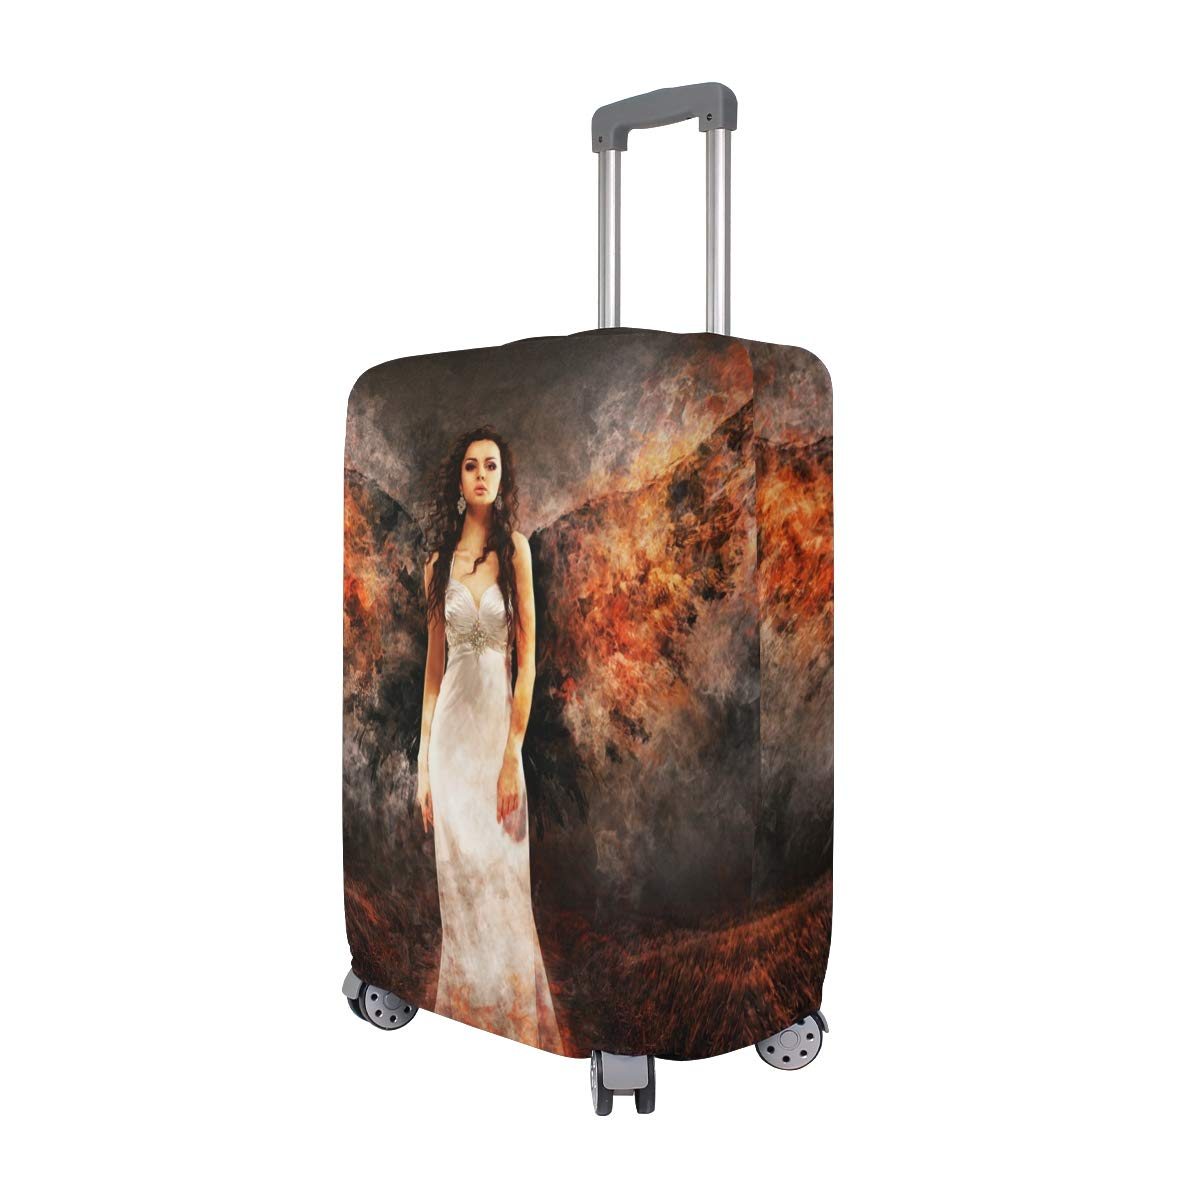 Travel Luggage Cover Angel The Witch Hell Archangel Woman Wing Suitcase Protector Fits 26-28 Inch Washable Baggage Covers